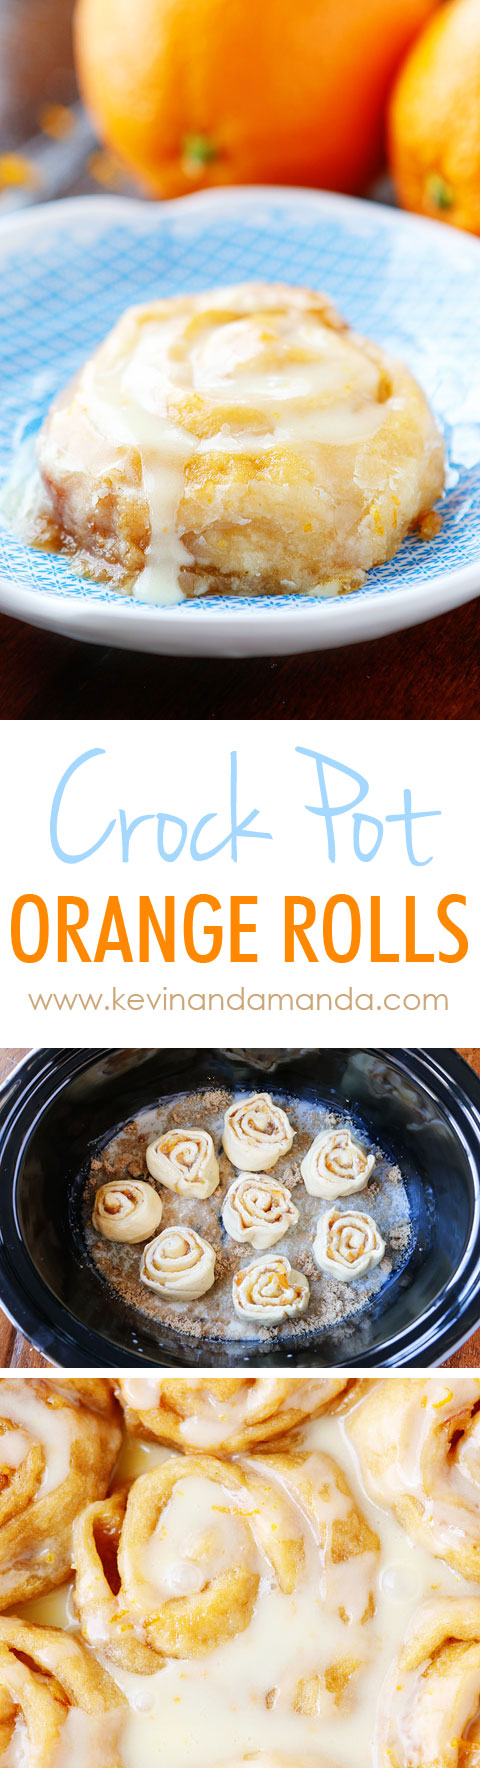 These Orange Sweet Rolls are made in a crock pot and turn out ULTRA soft and gooey!! Plus you can keep them warm in the crock pot so they always taste fresh out of the oven!!